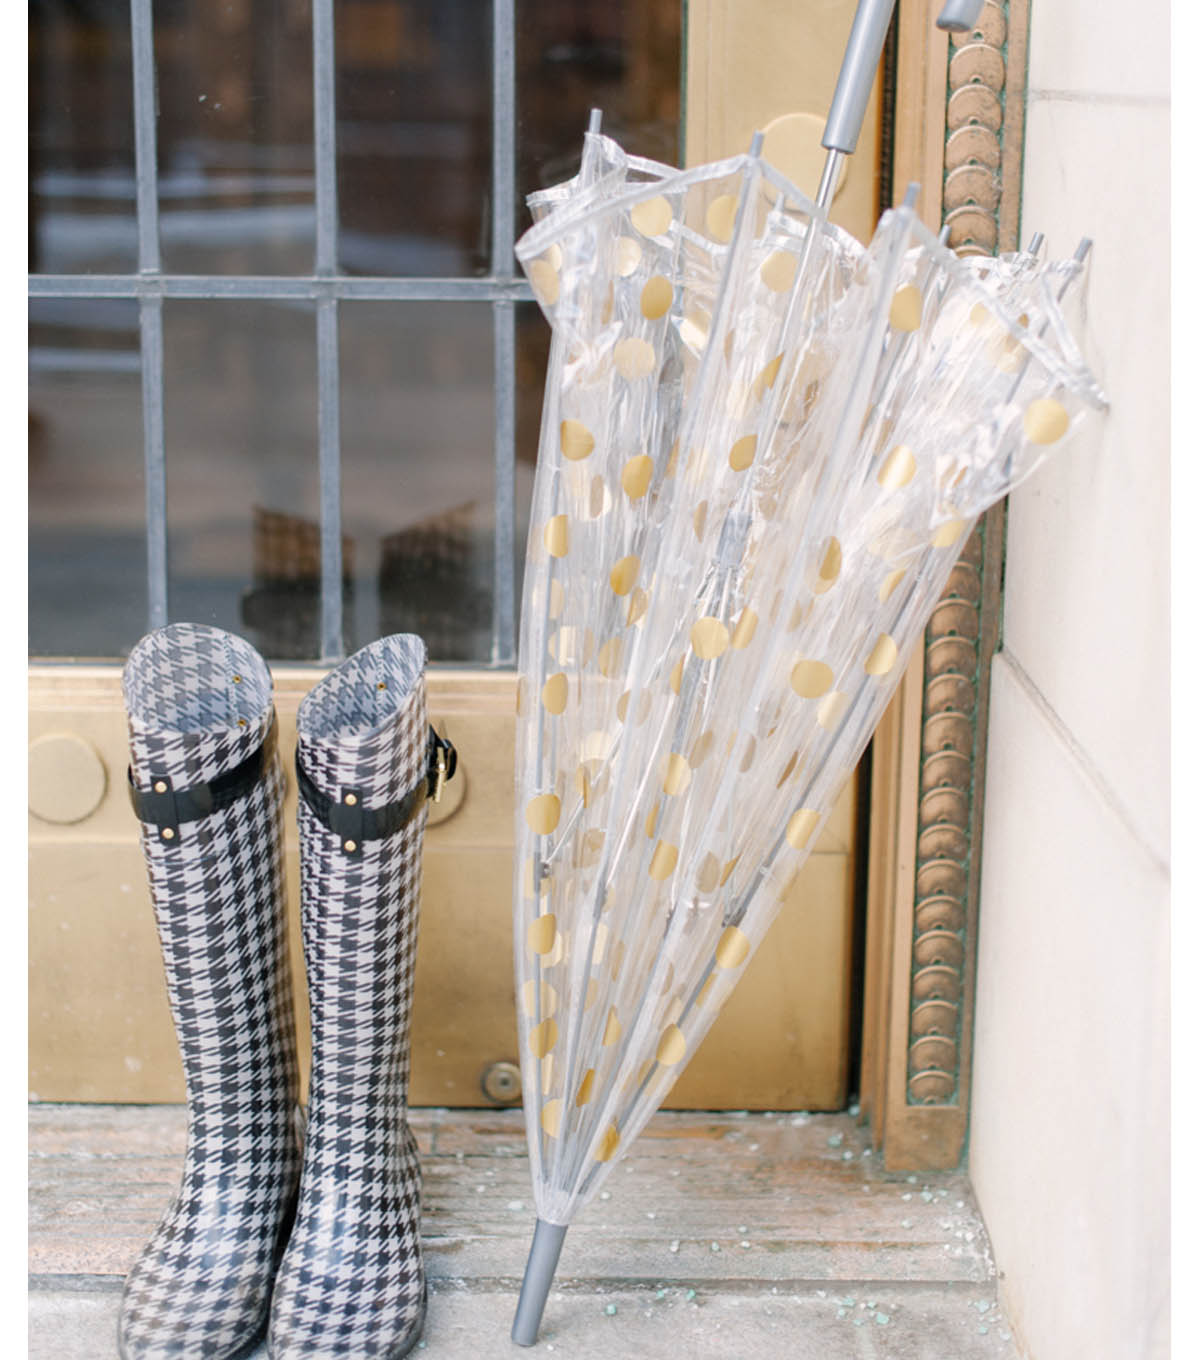 Metallic Polka Dot Umbrella